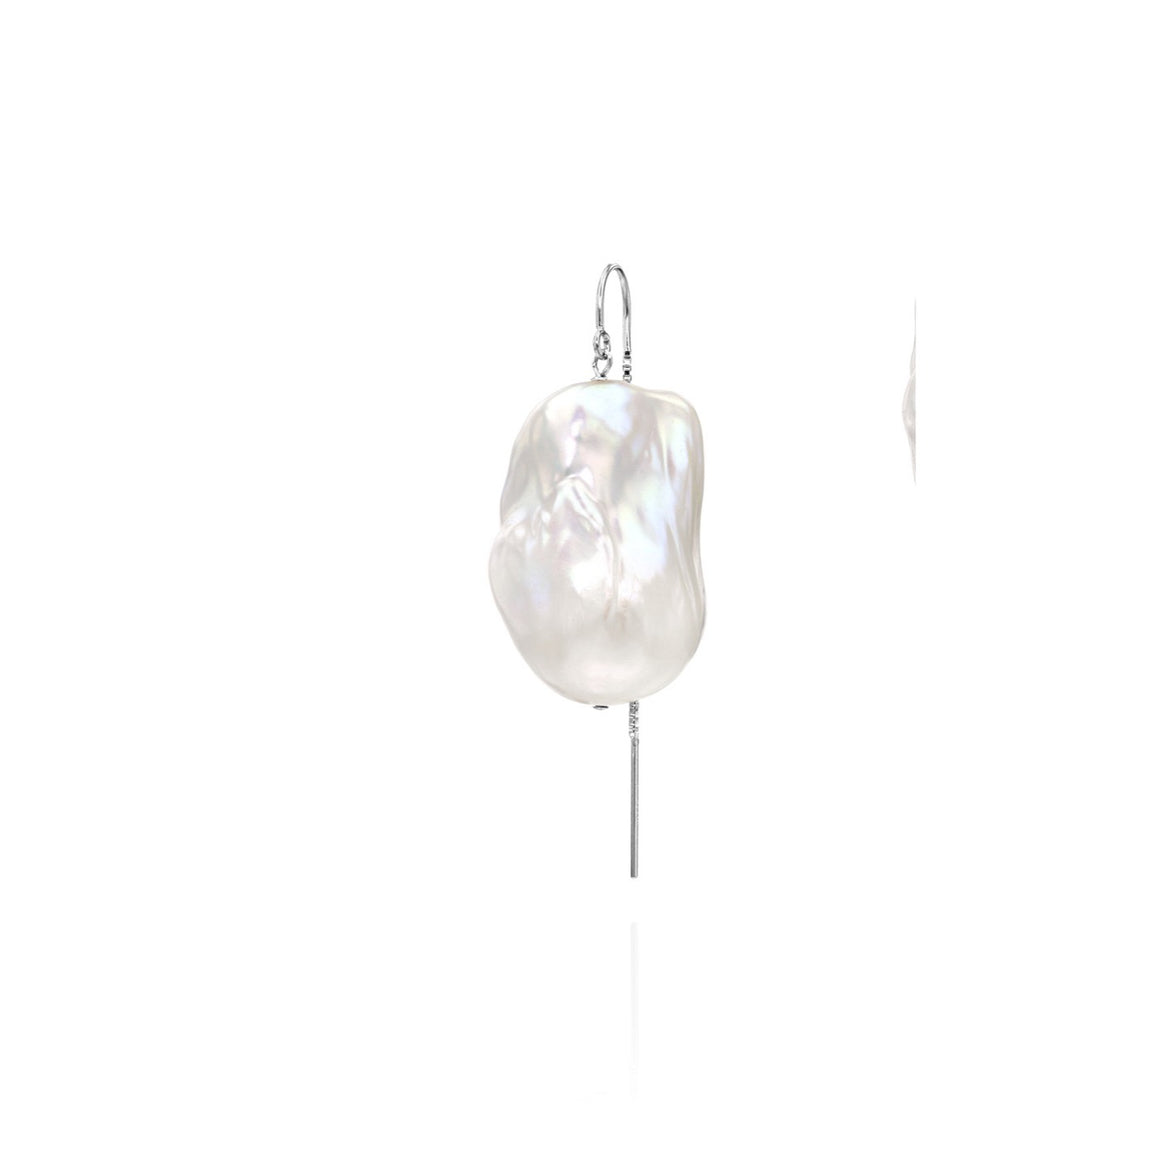 XXL Runway Size Sterling Silver Baroque Freshwater Pearl Drop Threader Single Earring